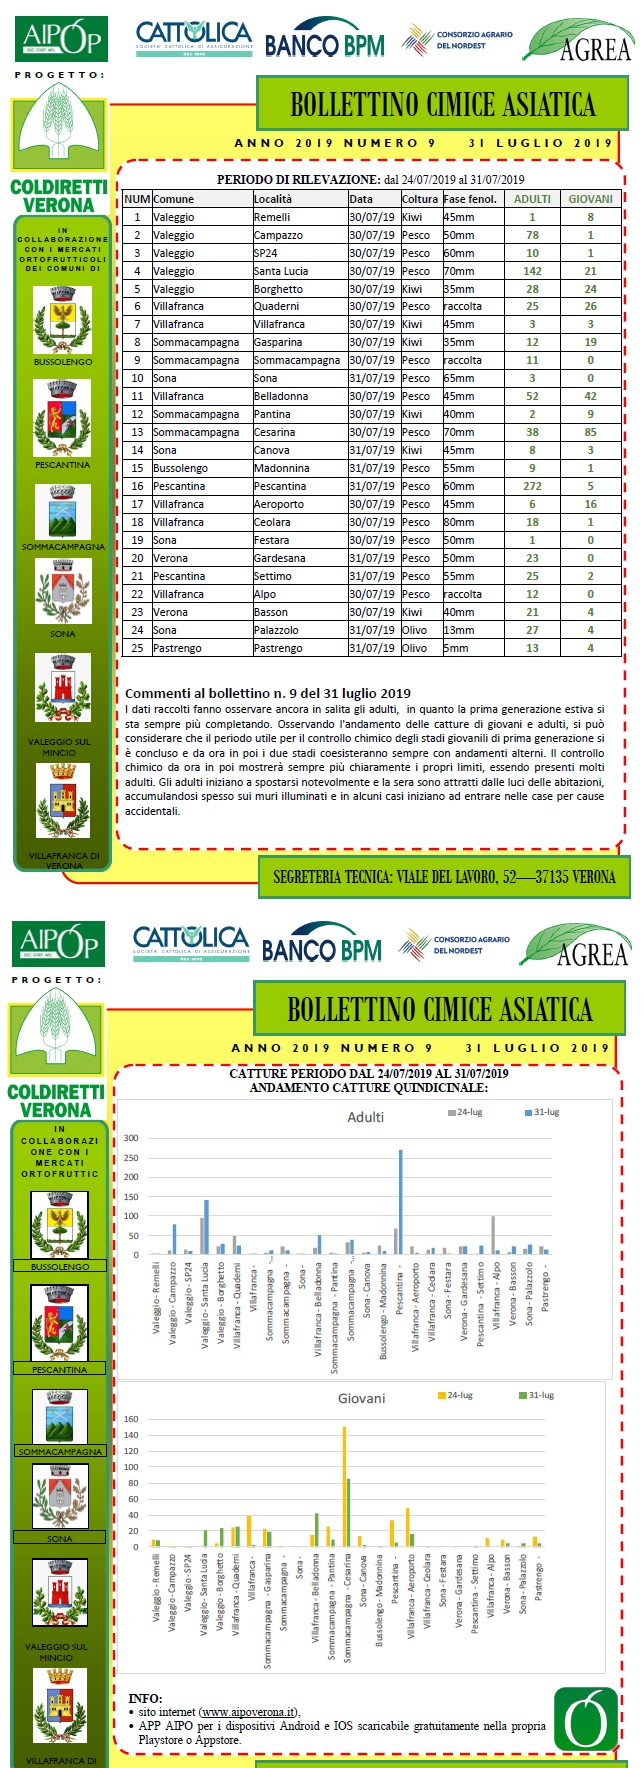 BOLLETTINO CIMICE ASIATICA N. 9 DEL 31/07/2019